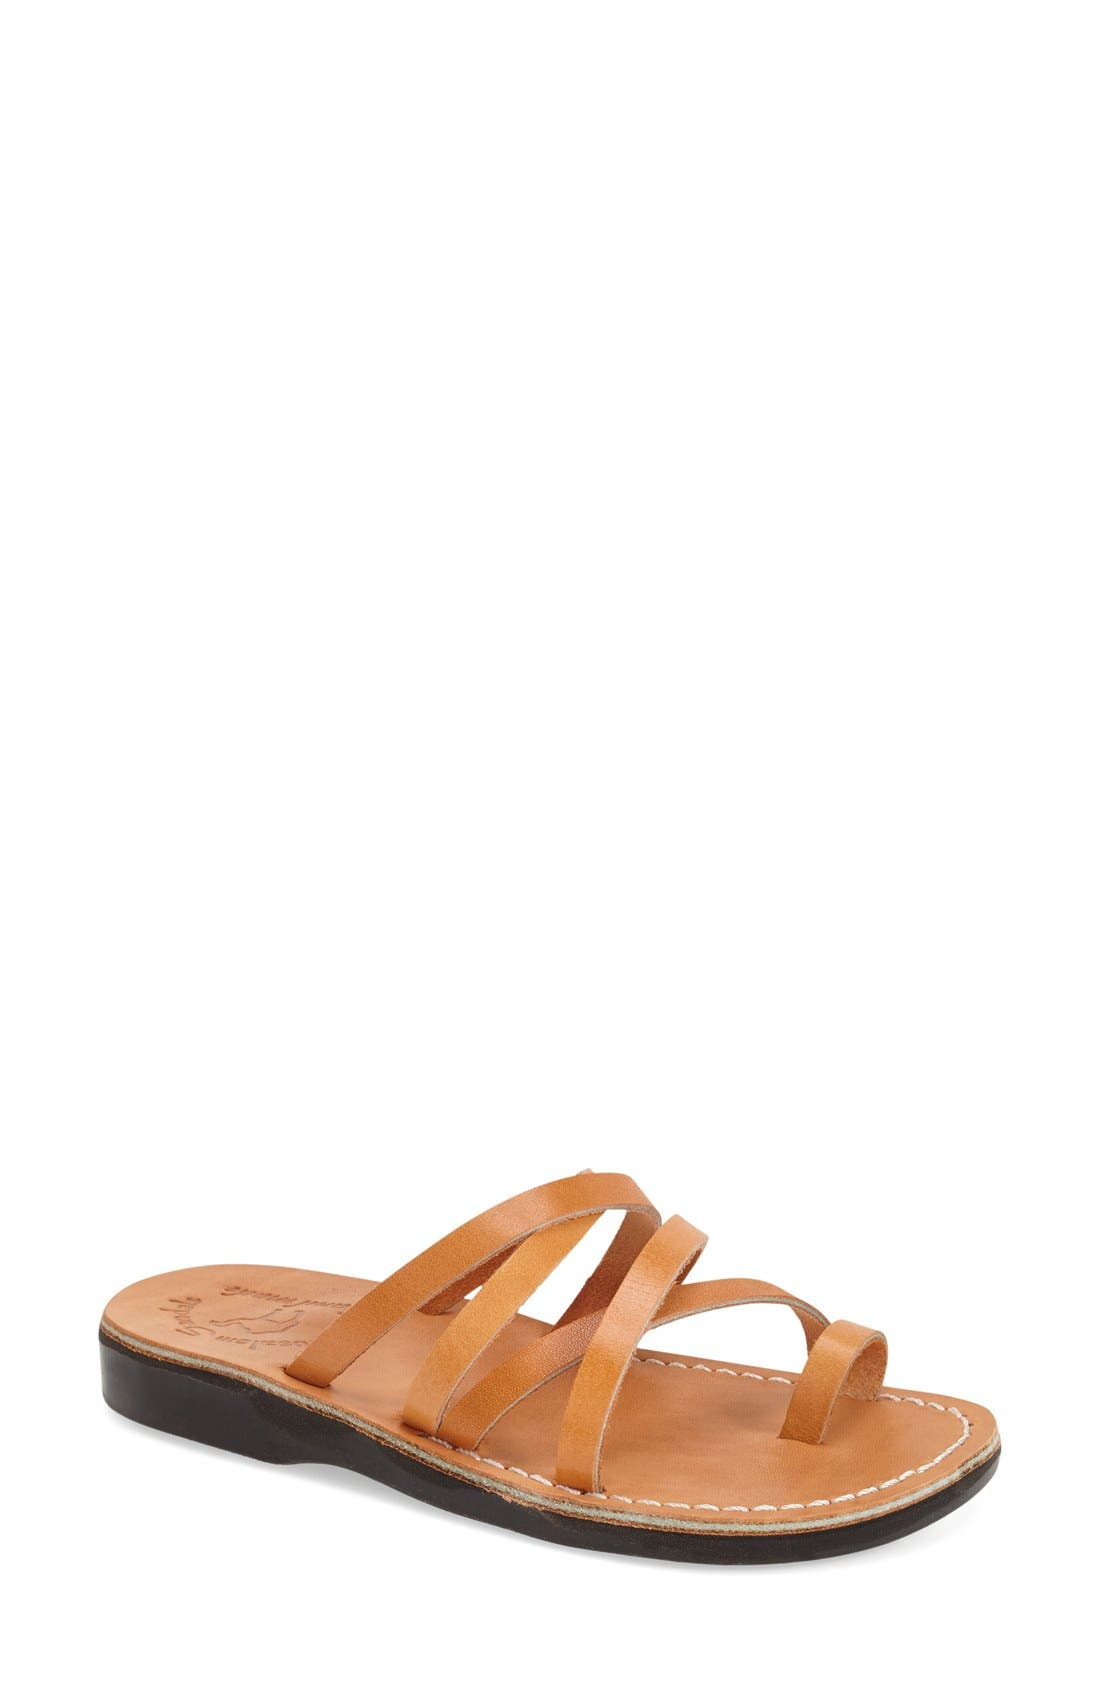 Main Image - Jerusalem Sandals 'Ariel' Strappy Slide Sandal (Women)